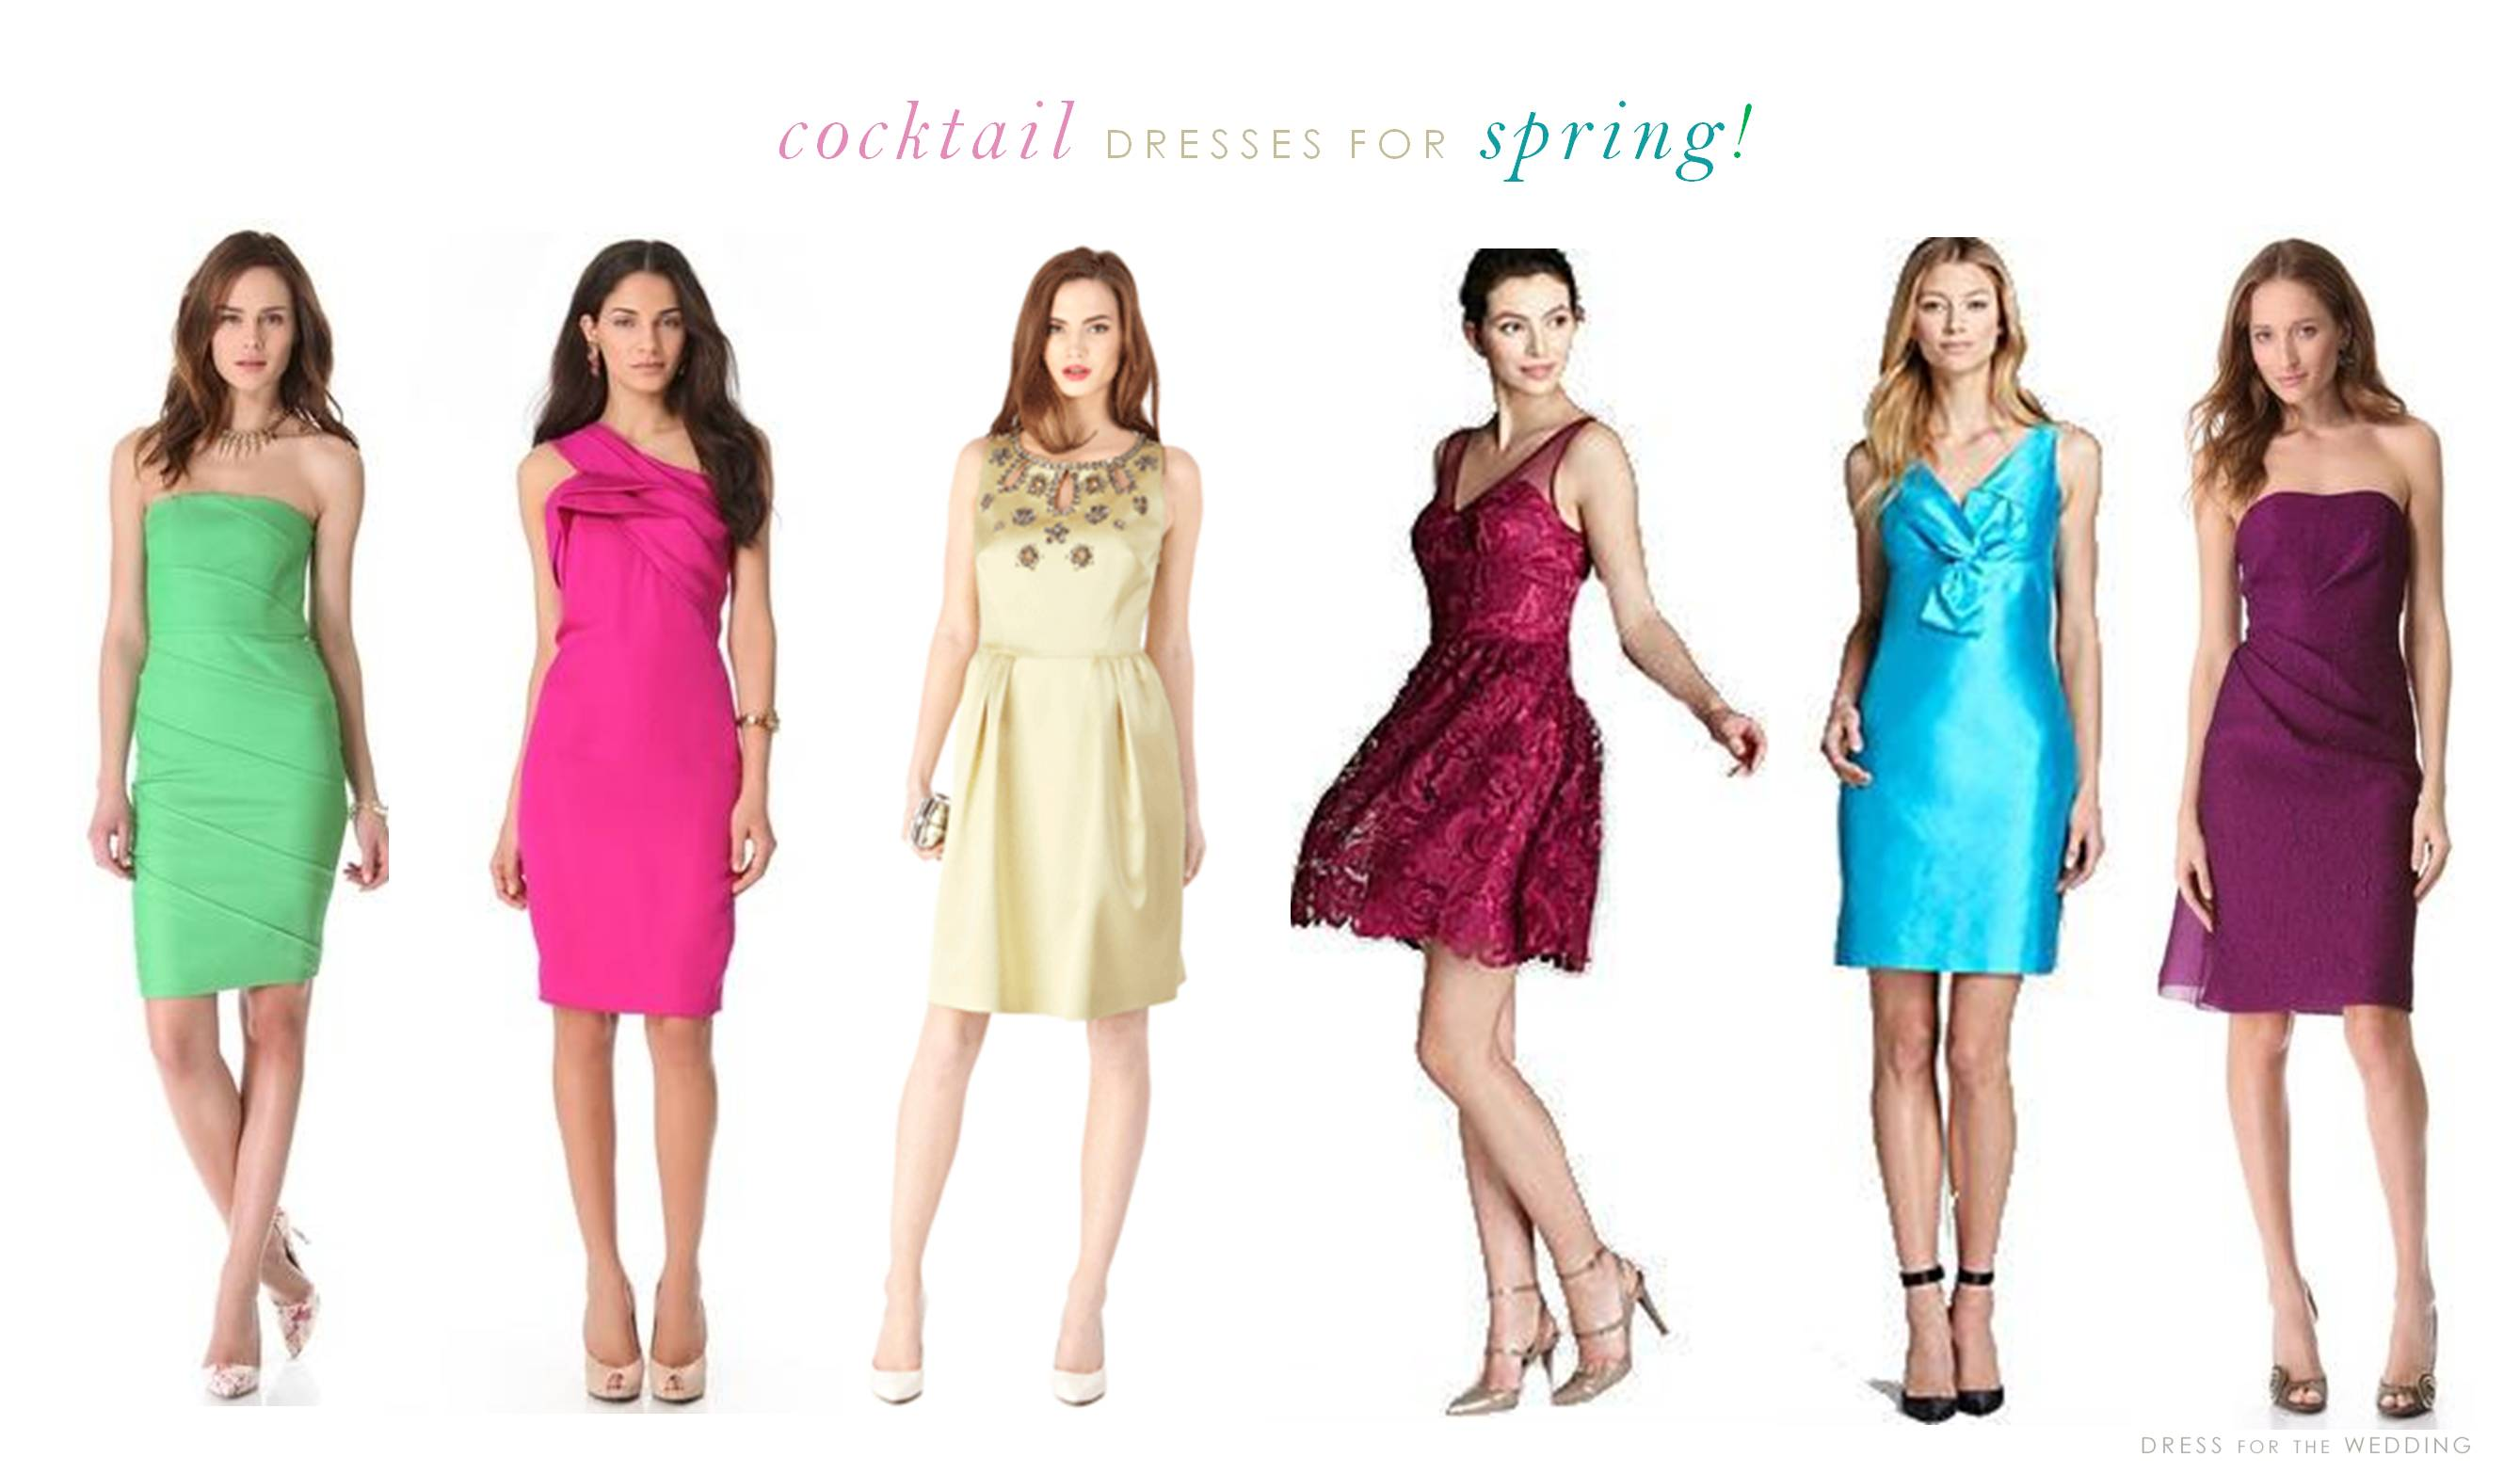 Cocktail dresses for a spring wedding for Cocktail dresses to wear to a wedding